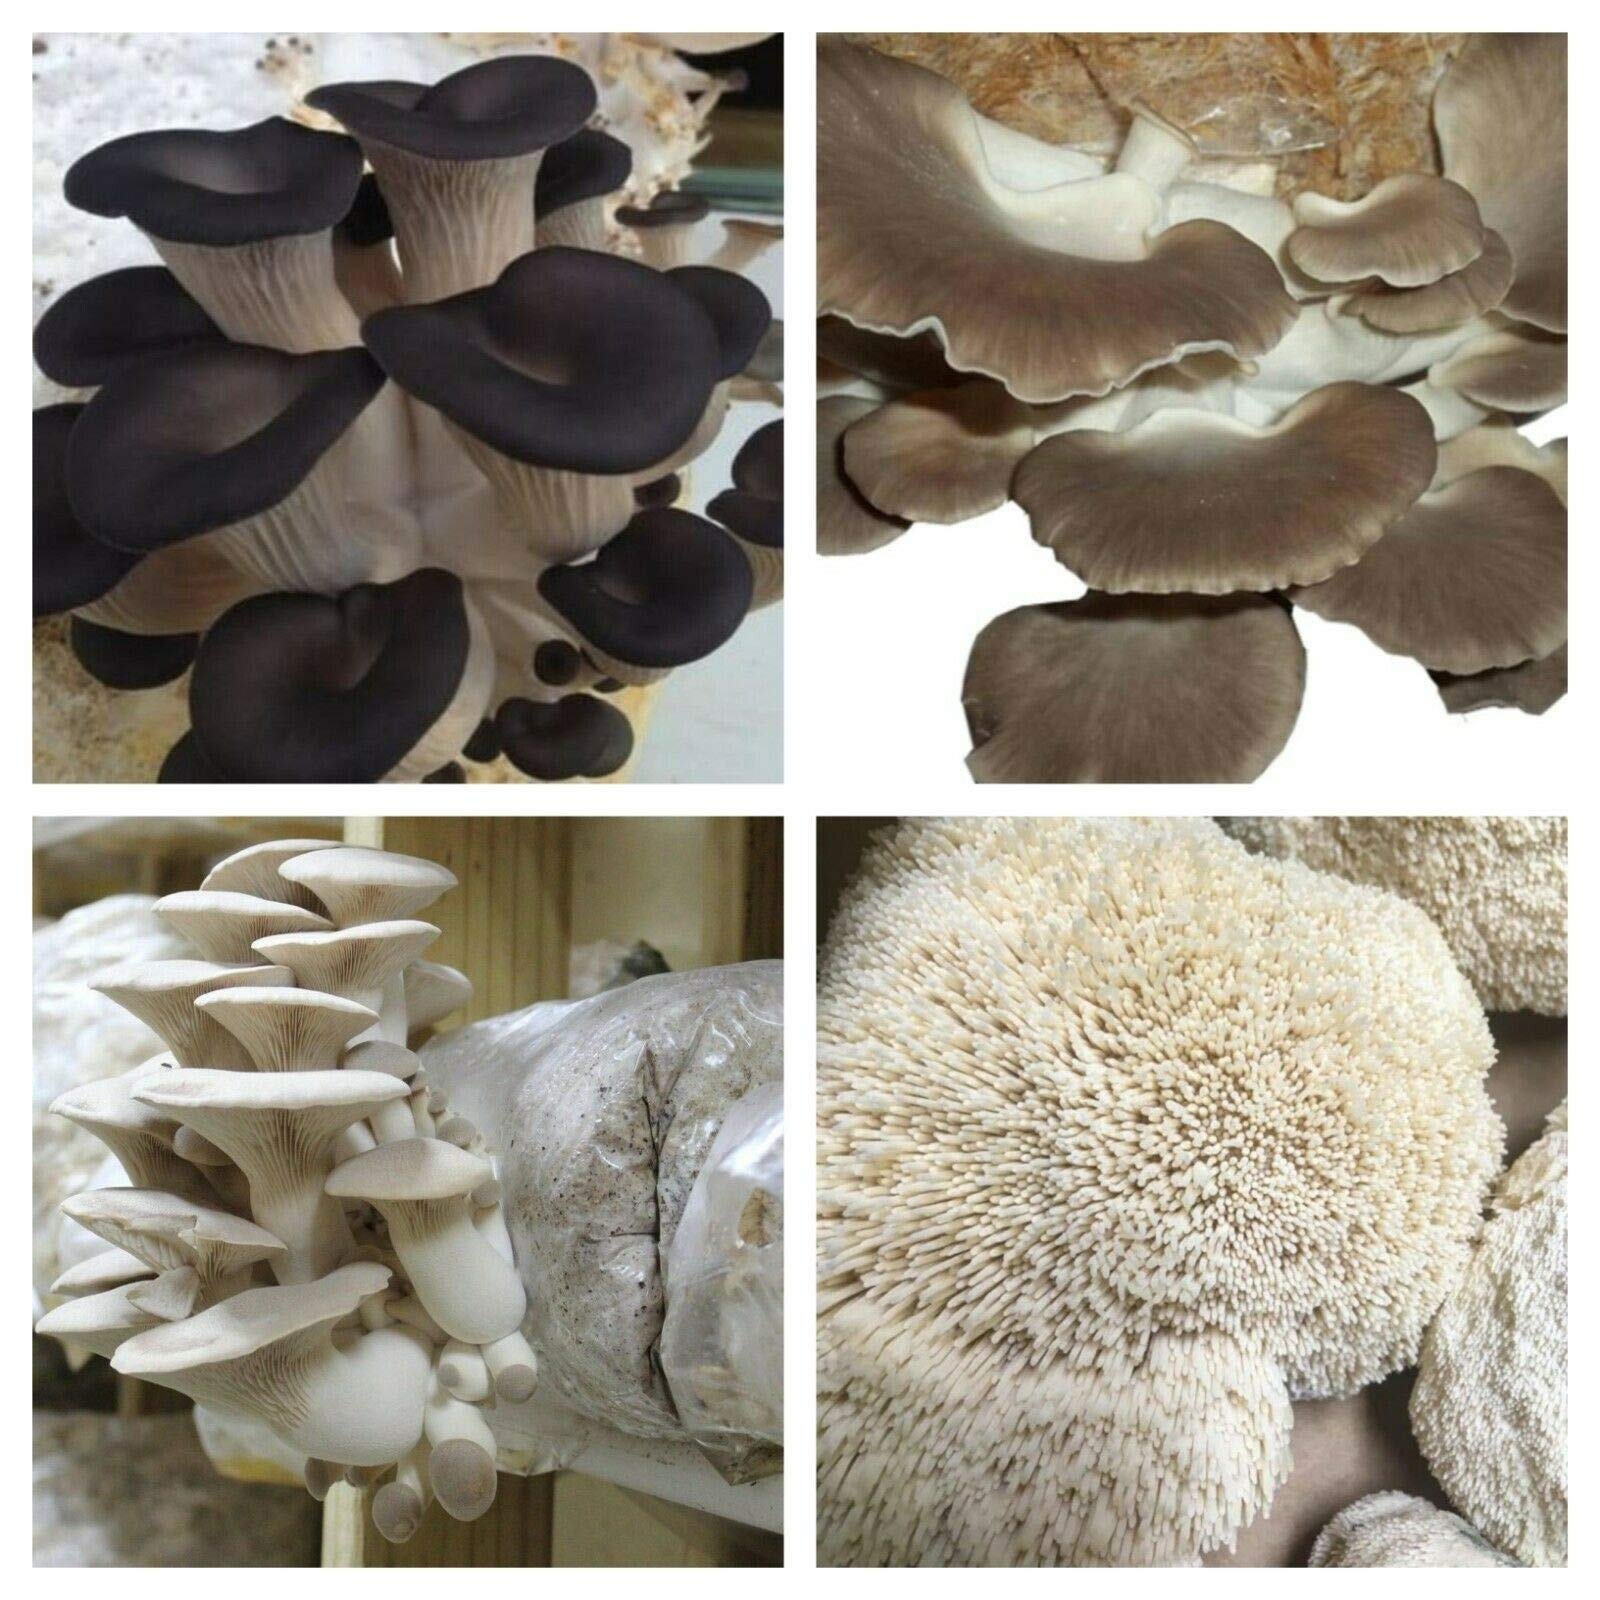 Super Pack- 4 Types of Mushroom Spawn; US Seller; Excellent Quality (1 LB of Each Mushrooms) Black Oyster, Grey Oyster, King Oyster, and Lion's Mane. by Naturegreen_Park